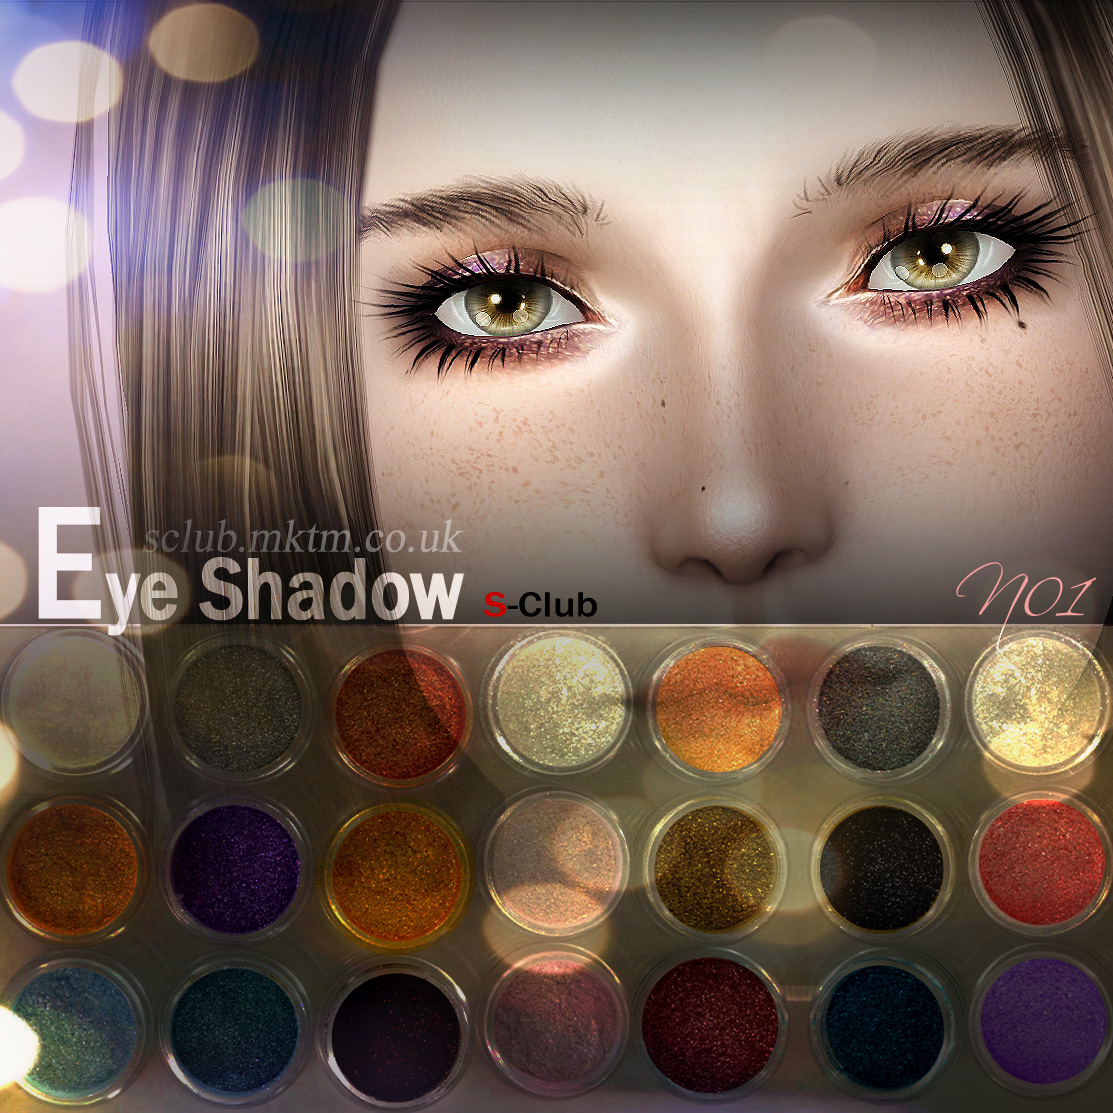 Eyeshadow-n1 by S-Club